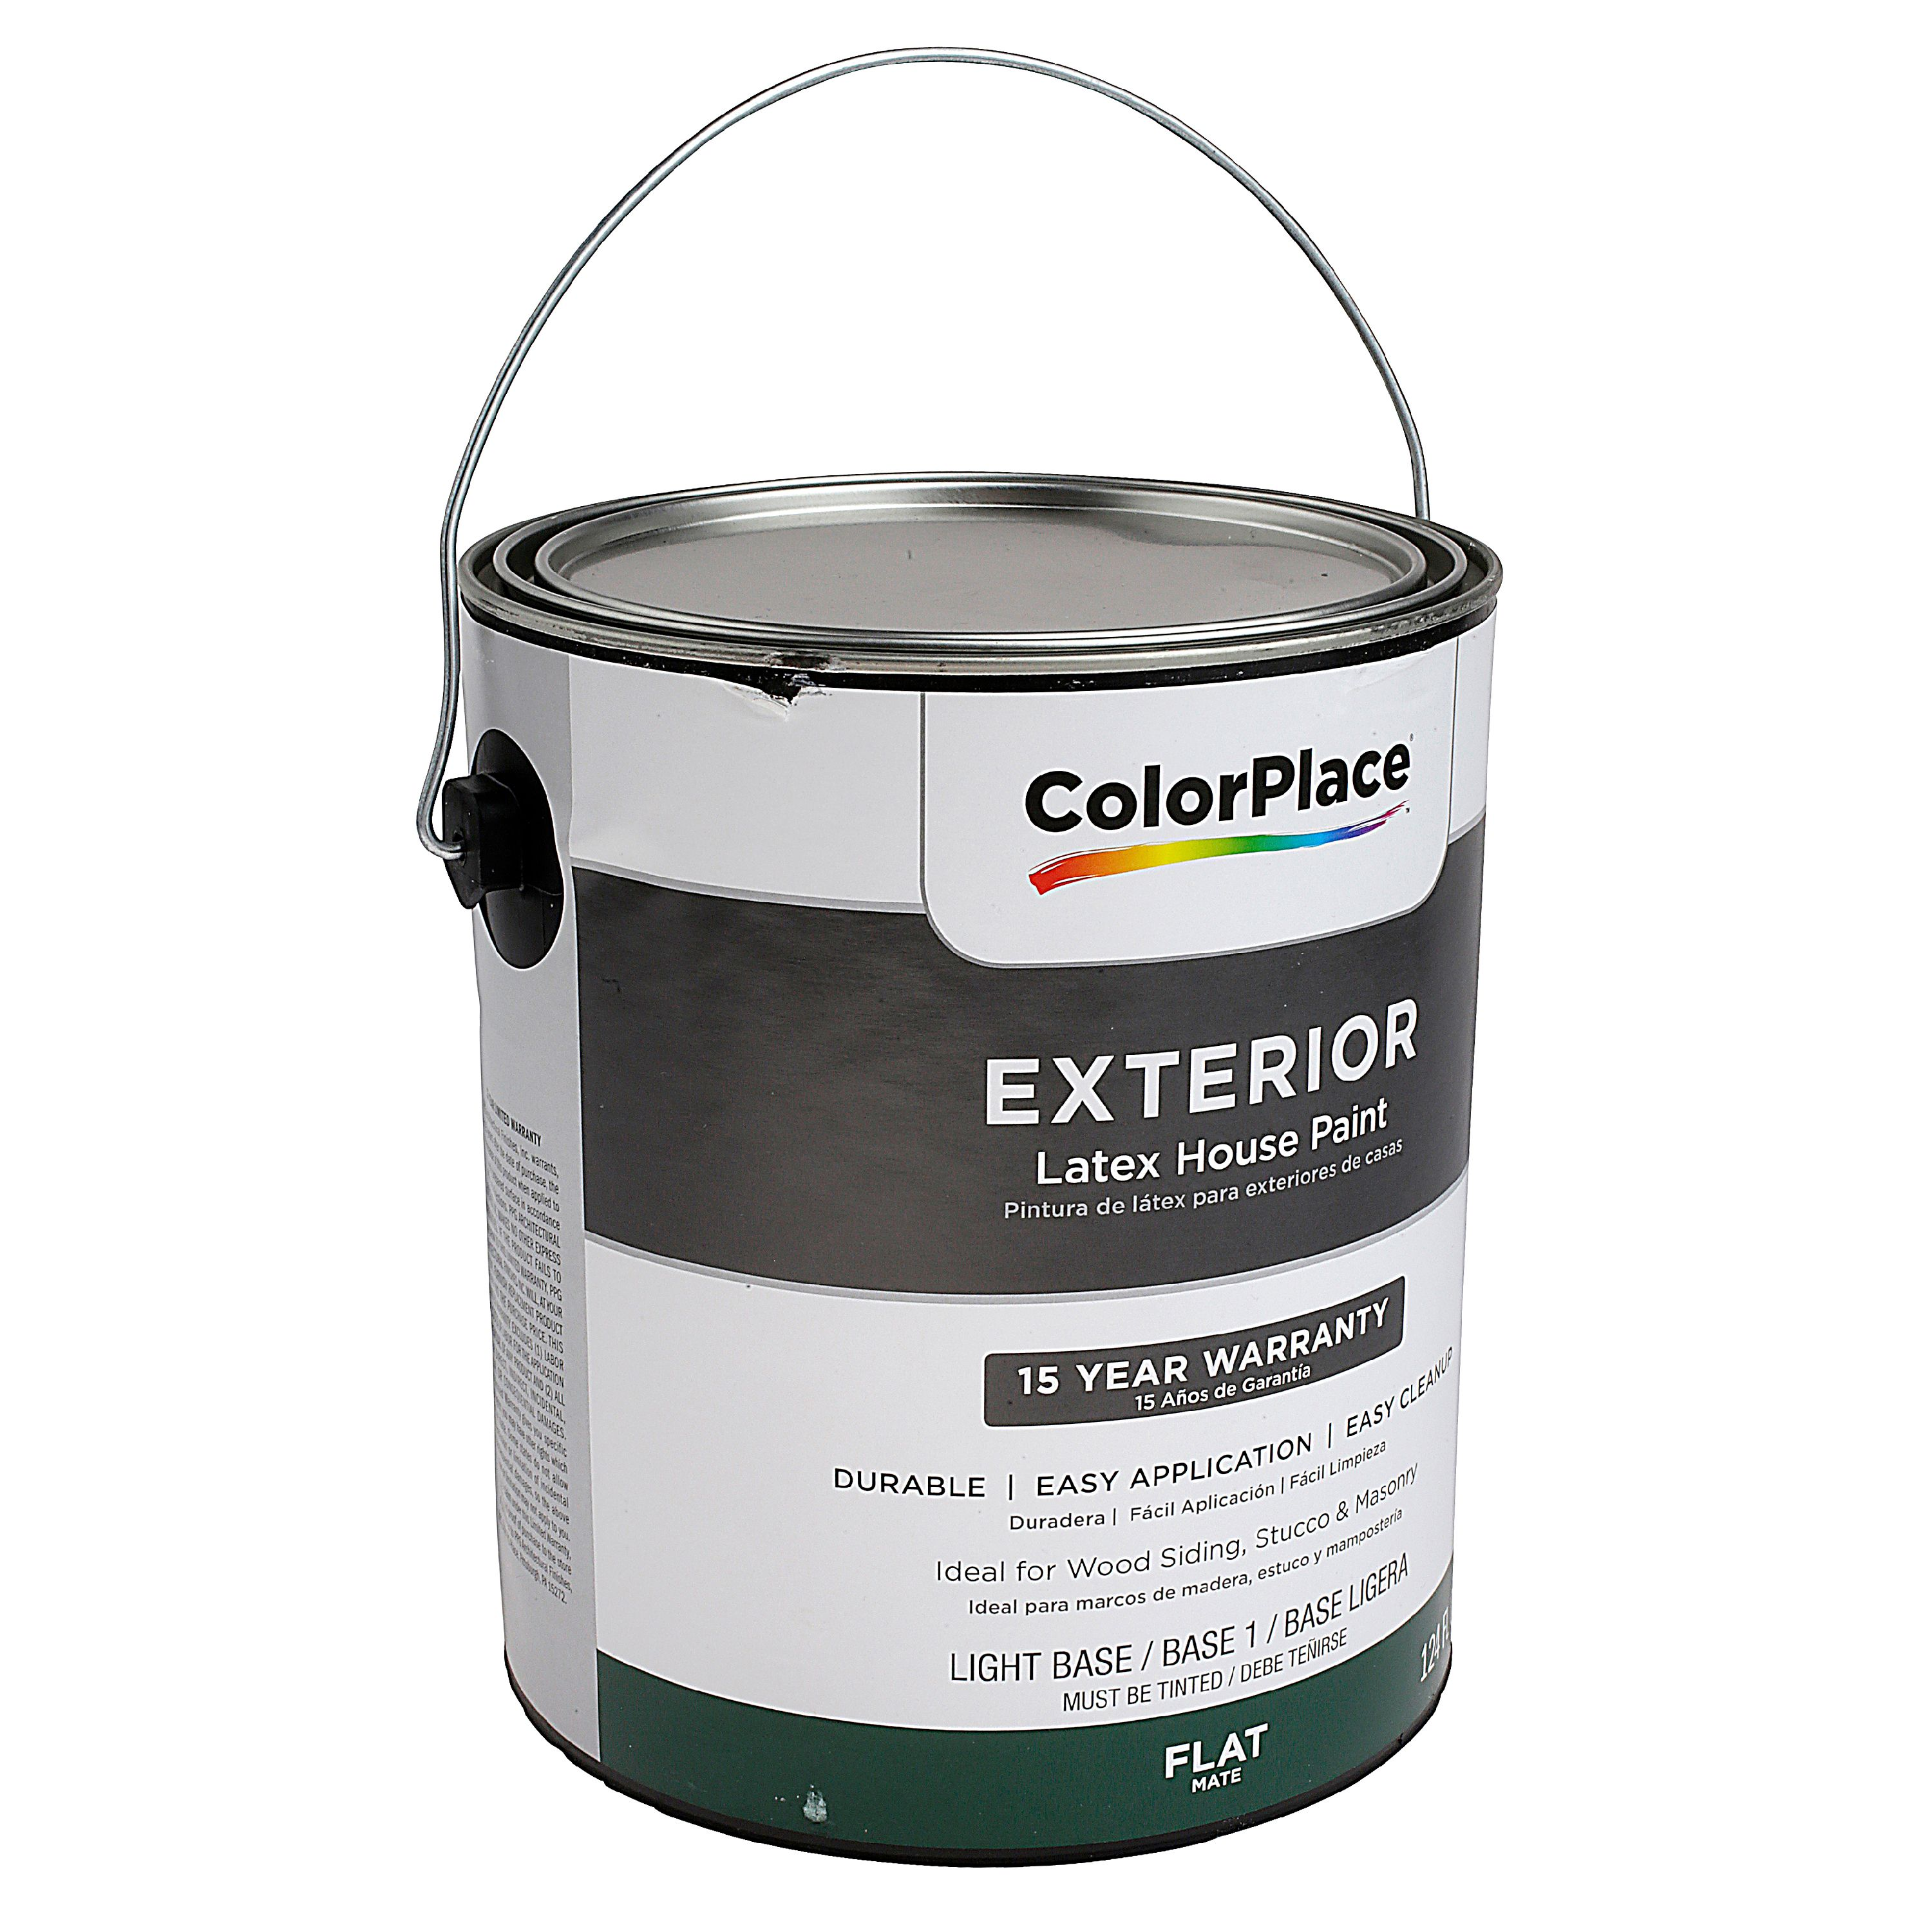 Color Place Exterior Latex Paint Image 4 Of 4